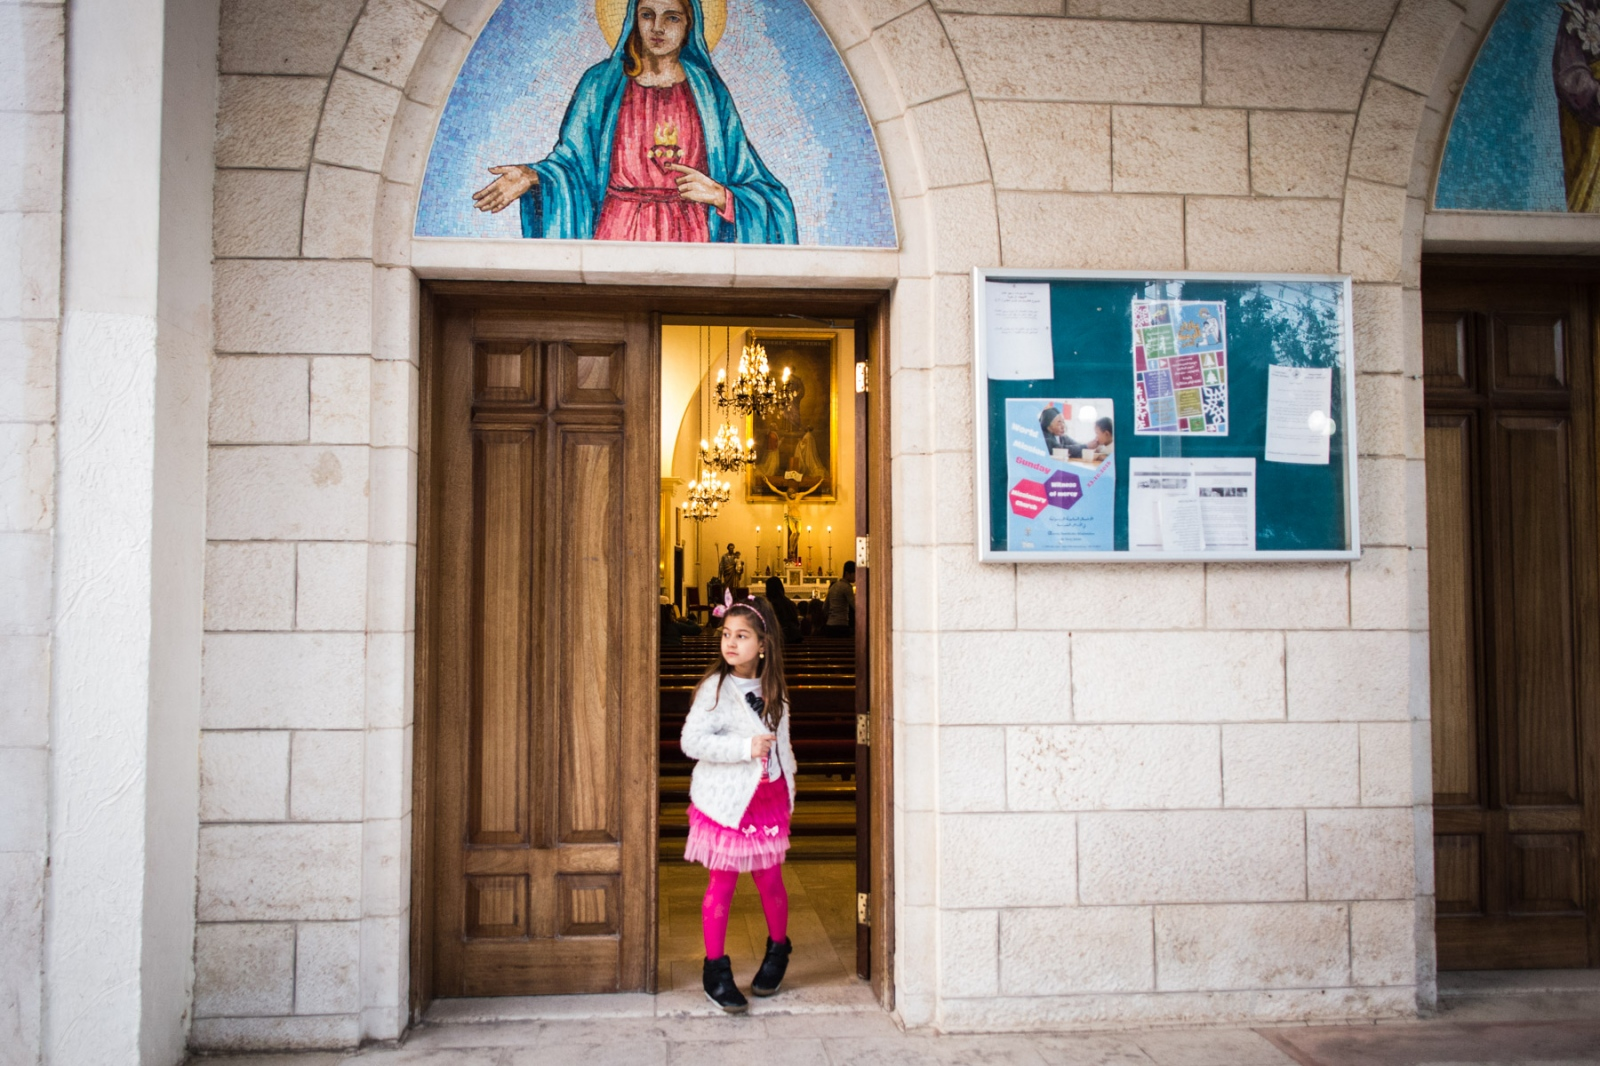 Valentina, 7, stands in the doorway of the Mar Youssef church in Amman, Jordan, on Nov. 4, 2016. She has lived in Amman with her family since fleeing Mosul over a year ago when ISIS took over.